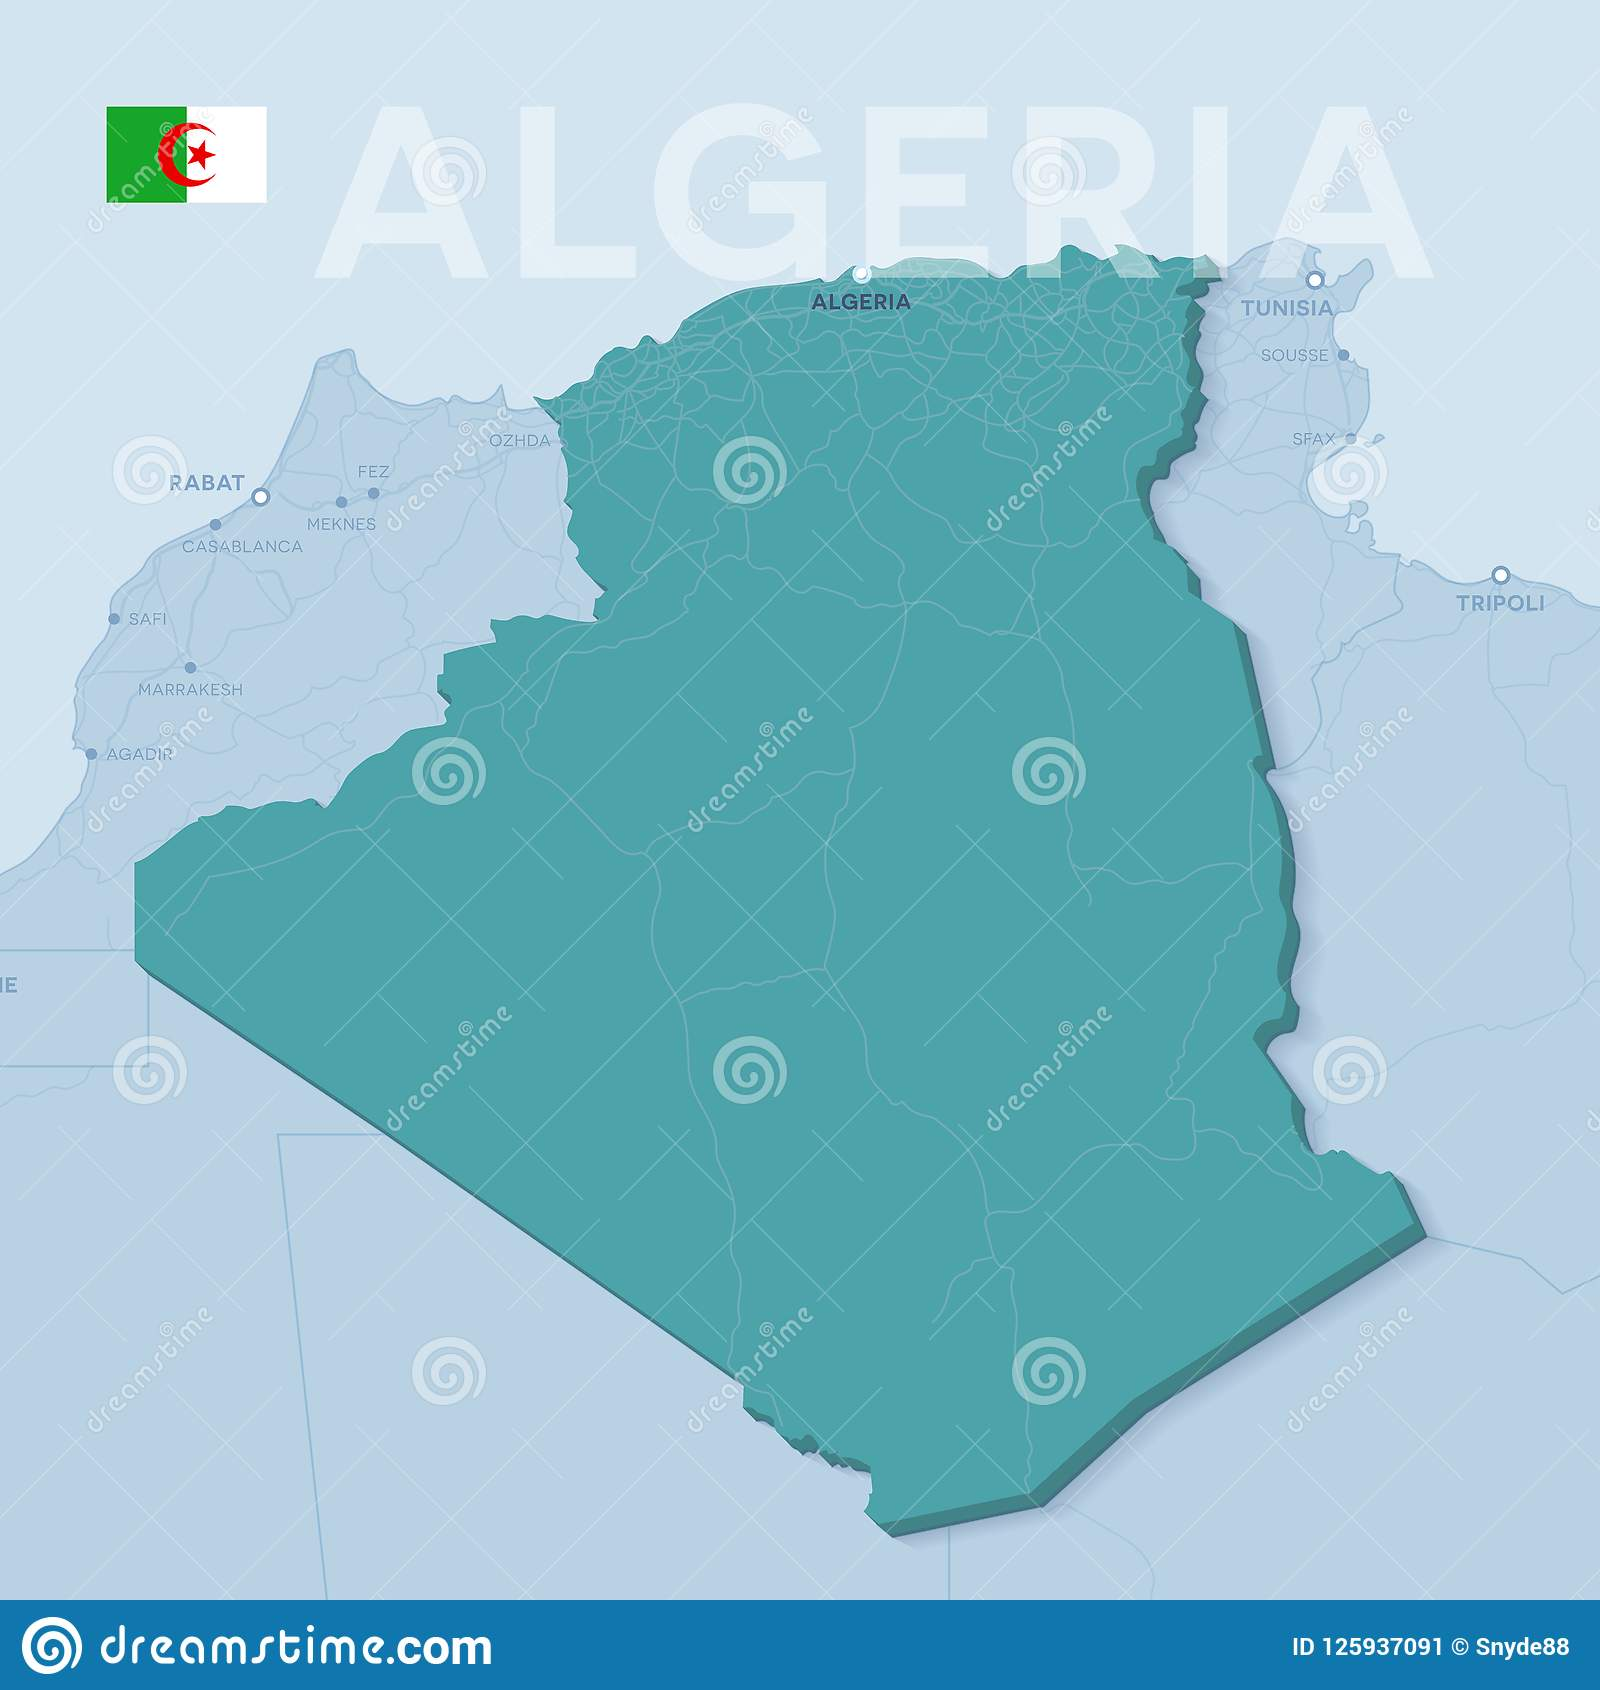 Verctor Map Of Cities And Roads In Algeria. Stock Vector ... on